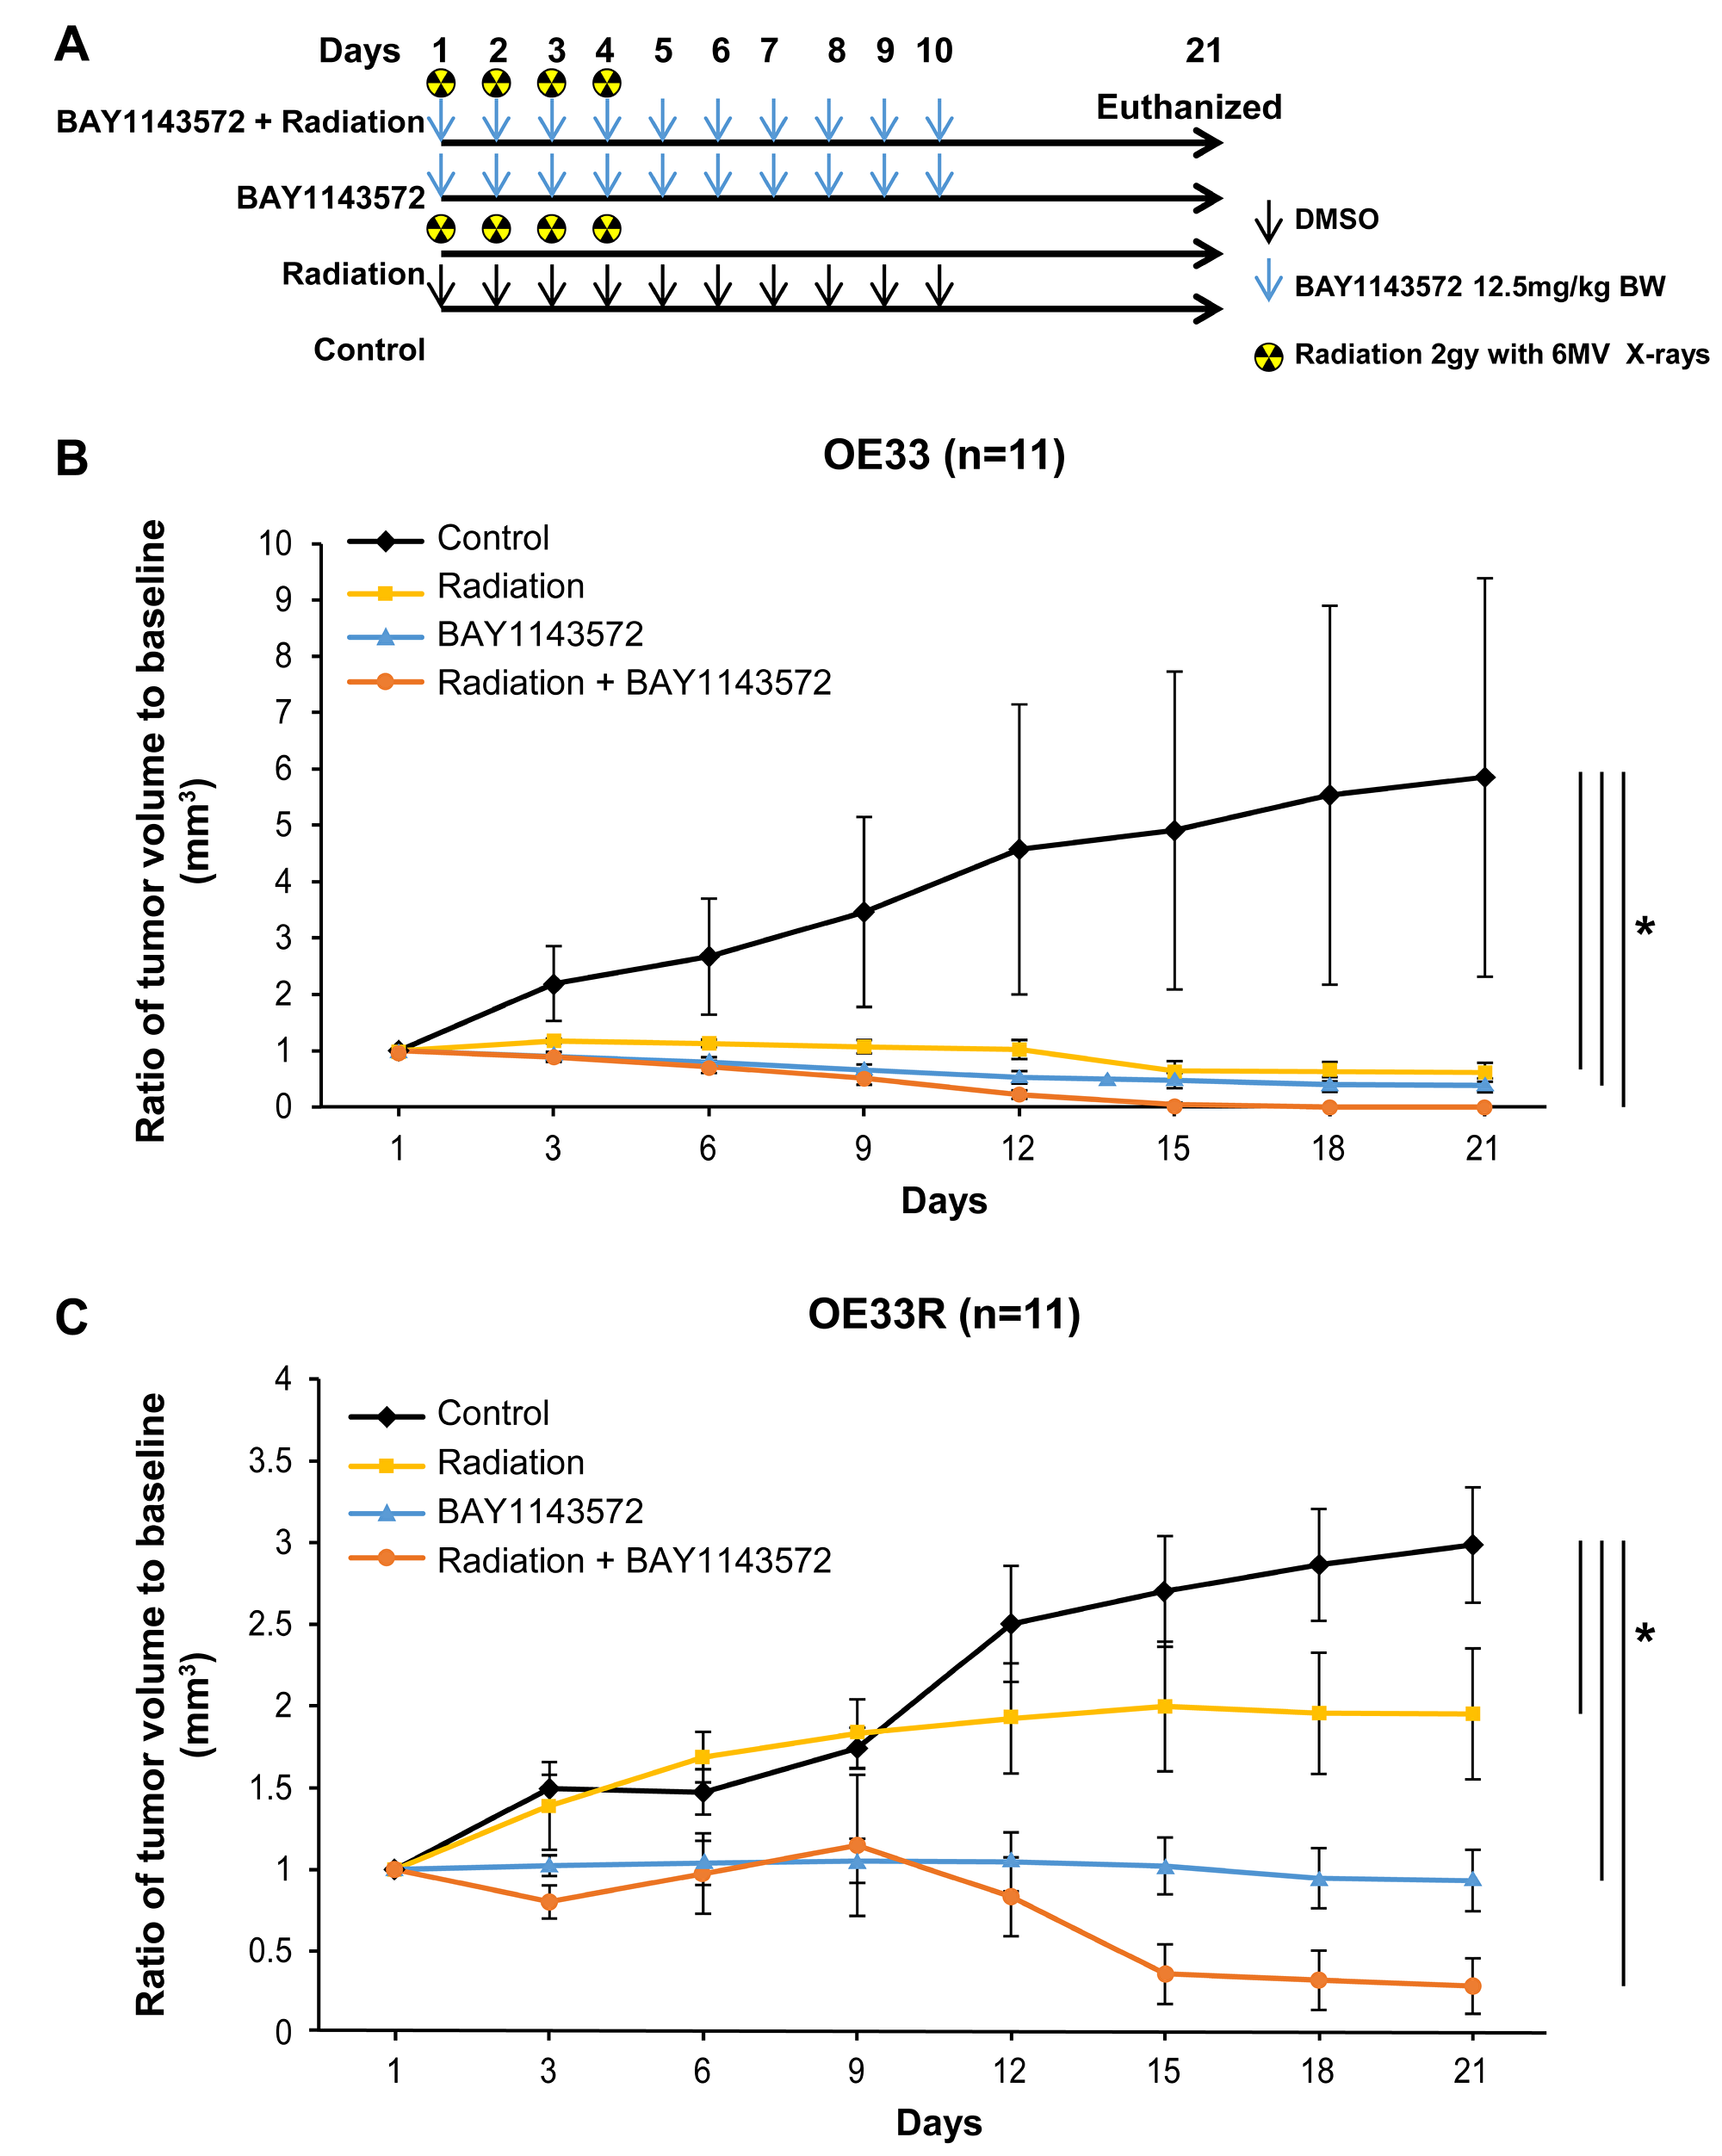 CDK9 inhibitor enhances sensitization of fractionated radiation in OE33 and OE33R xenografts.